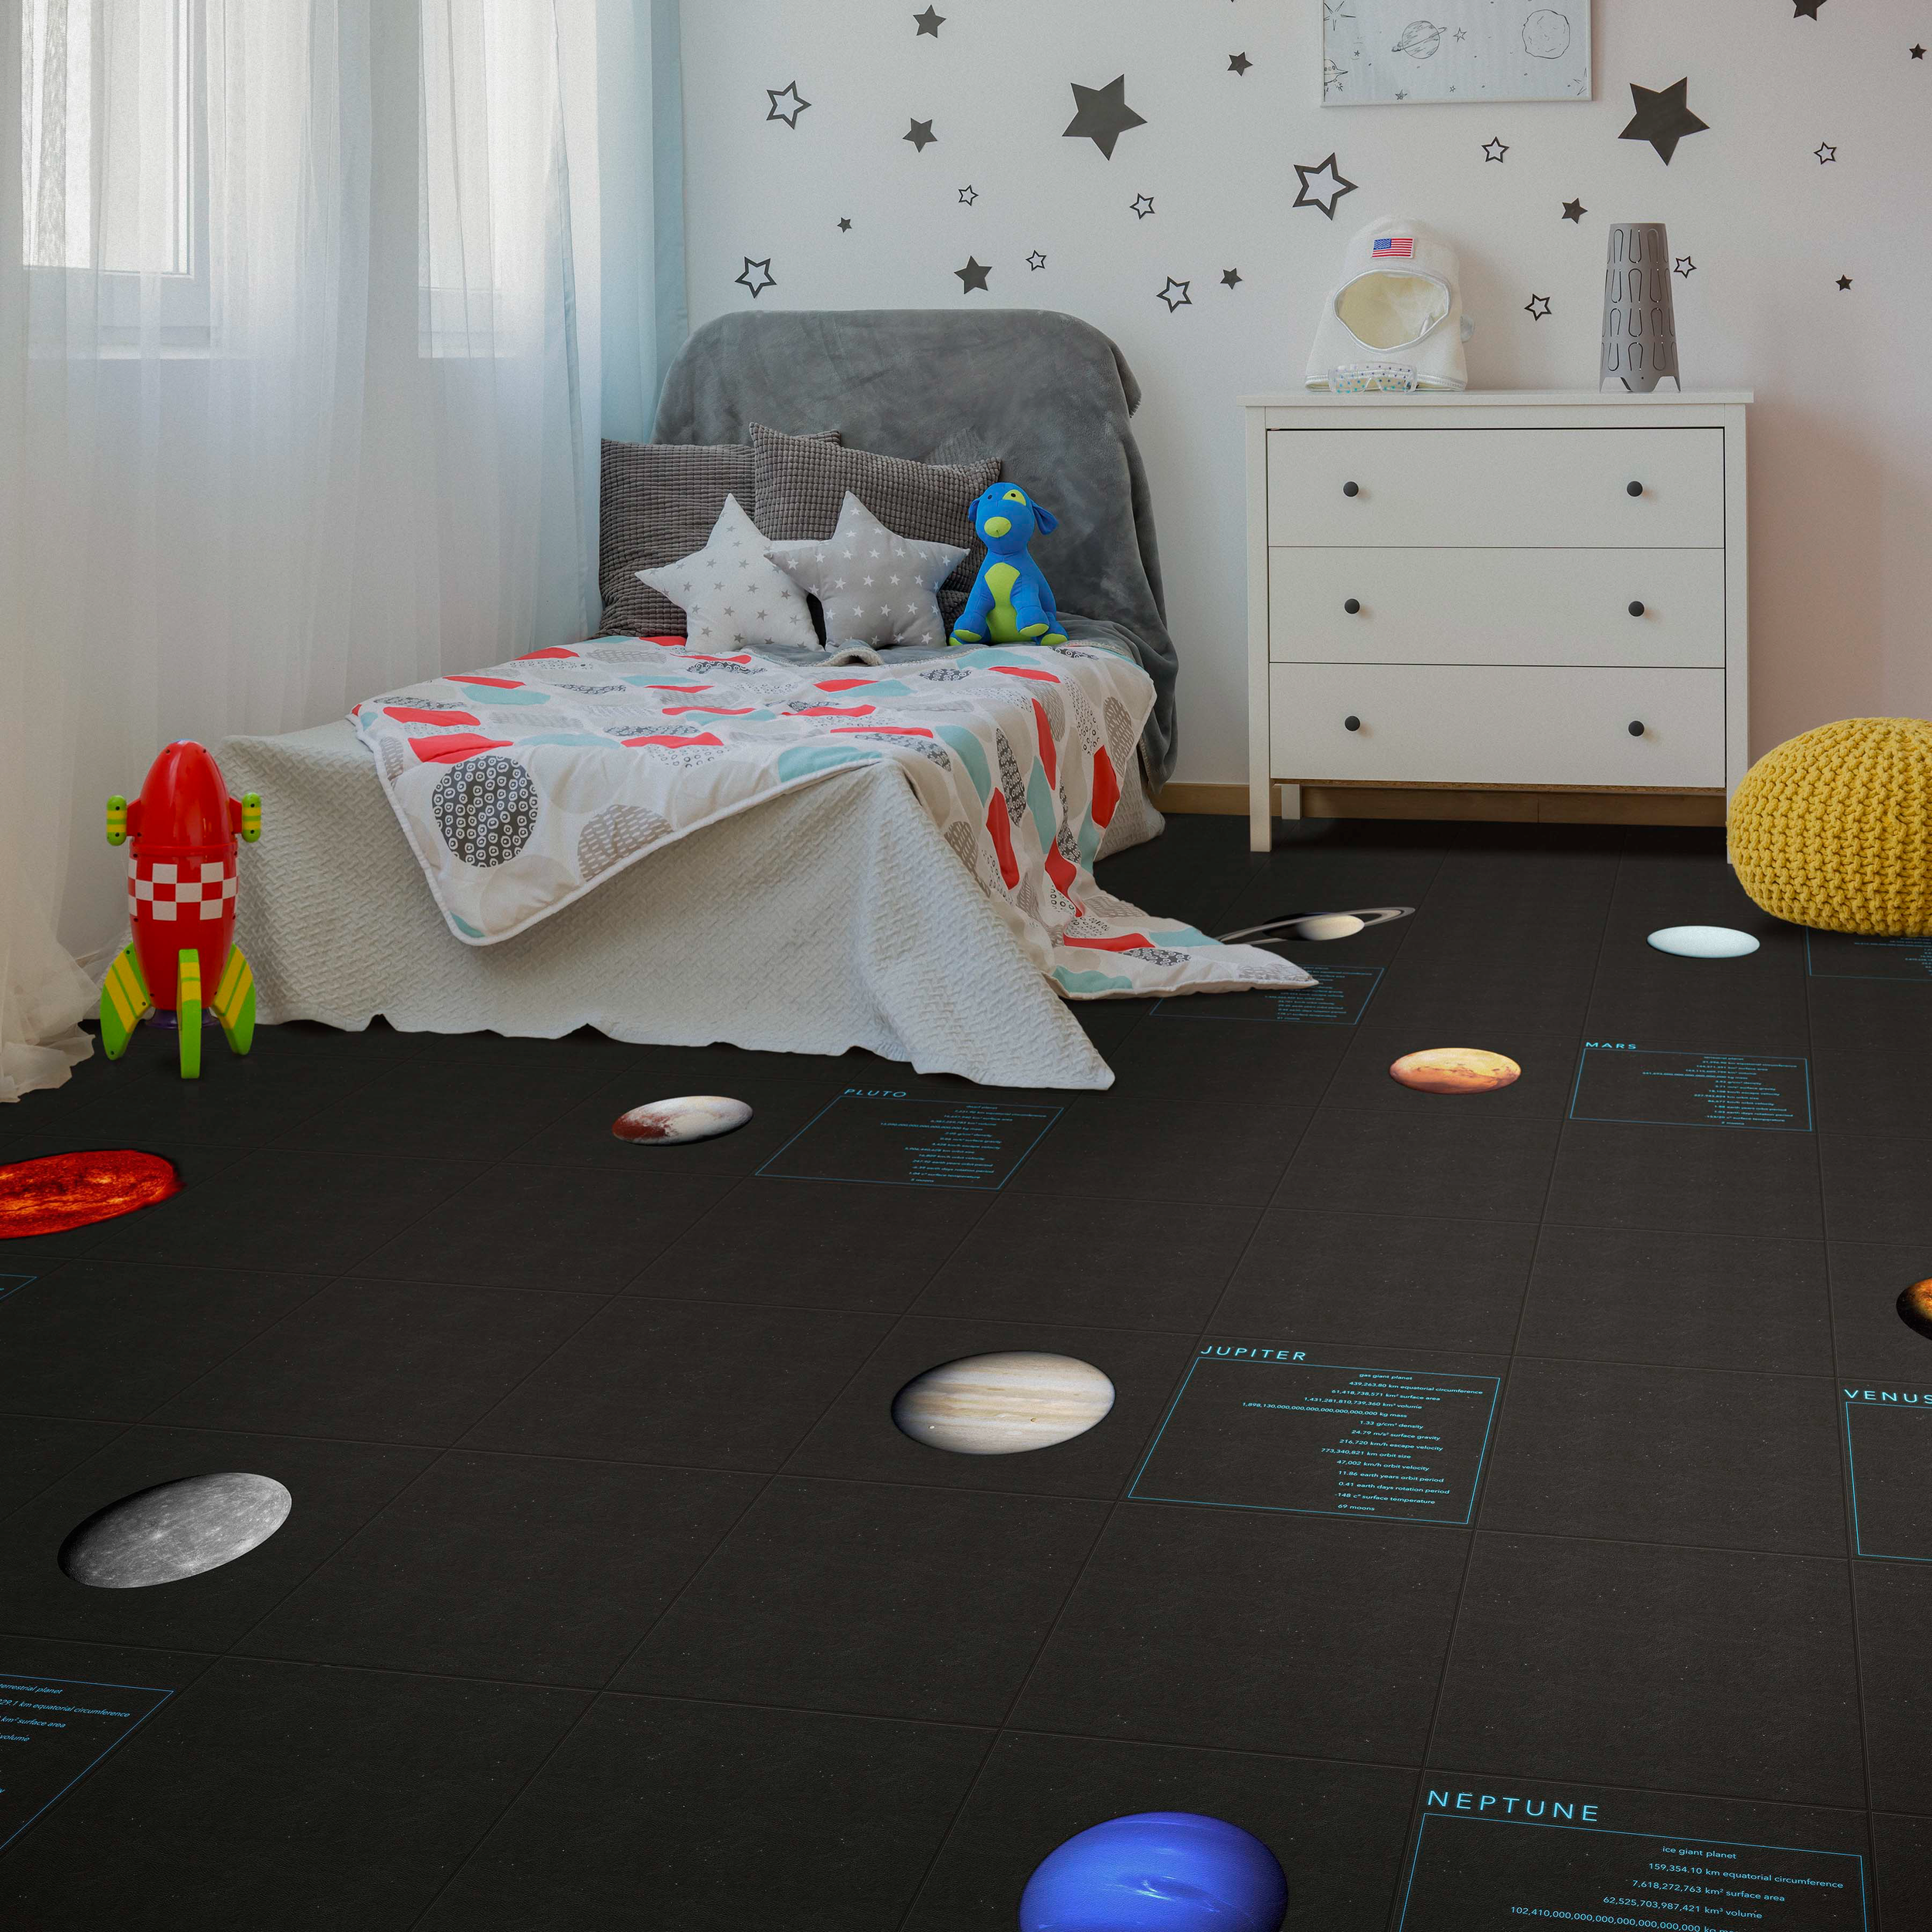 Solar System On Floor.png